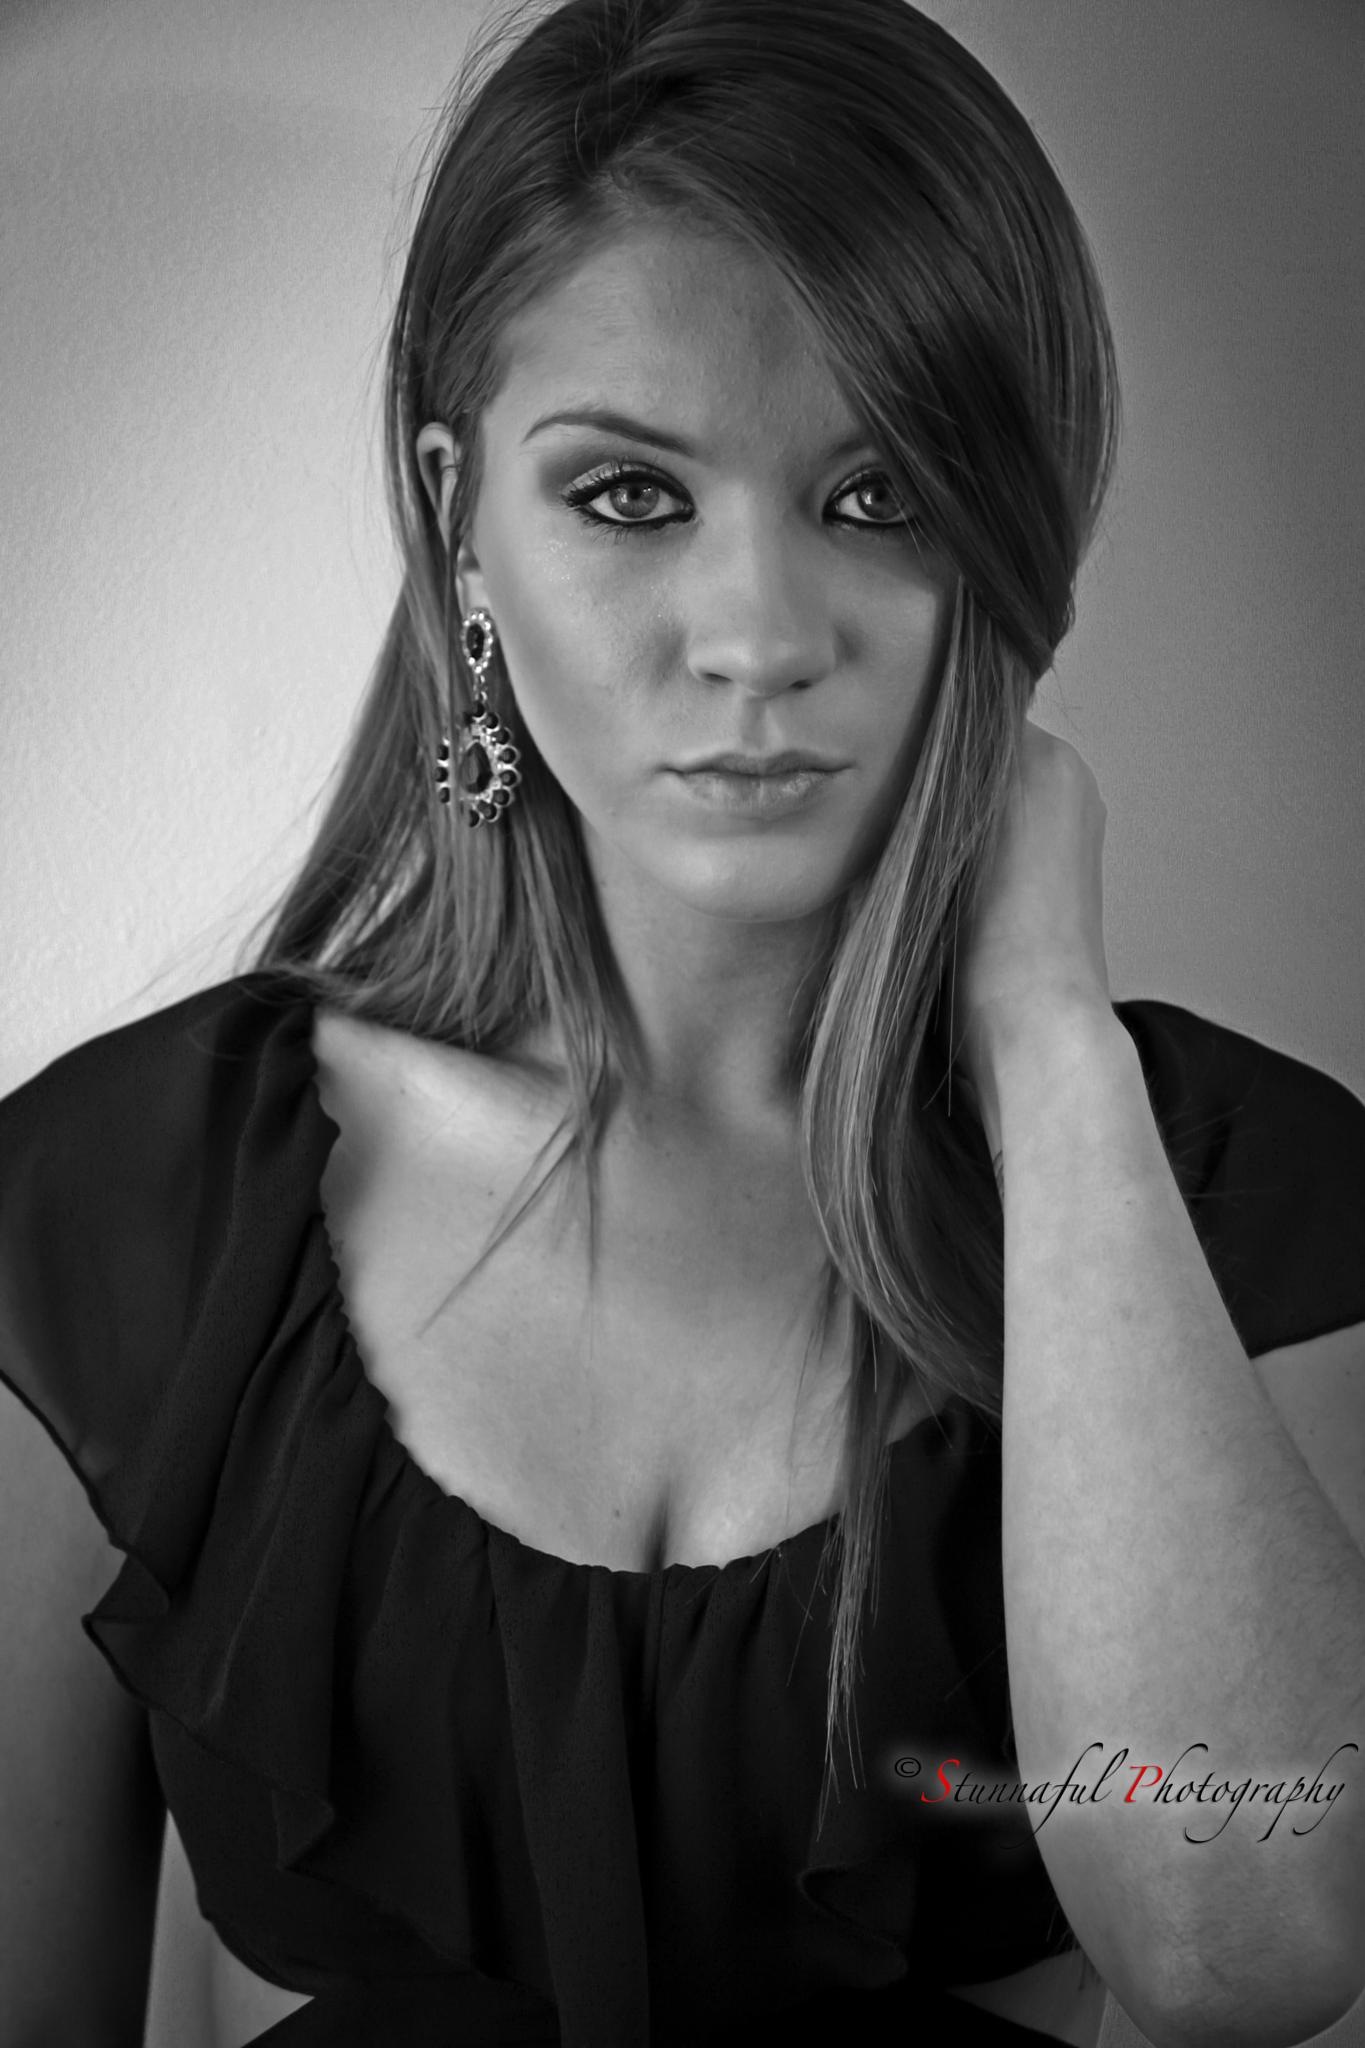 Meredith's portrait by Stunnaful Photography